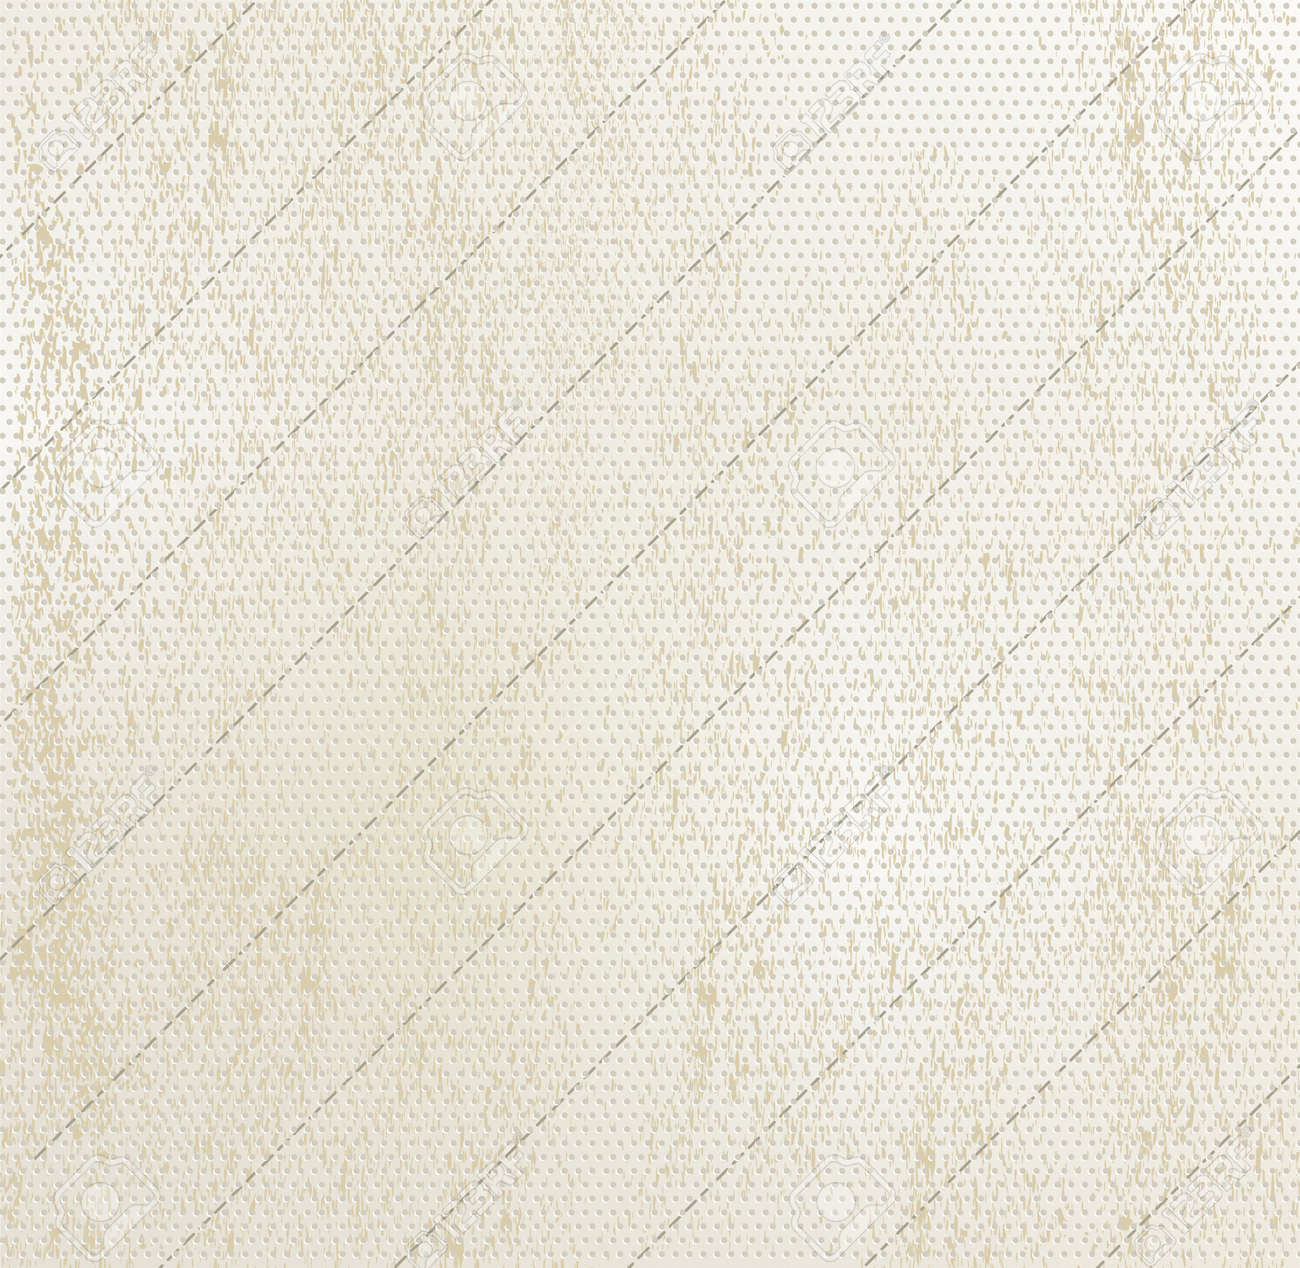 coarse texture of blank artist  canvas background Stock Vector - 11087682